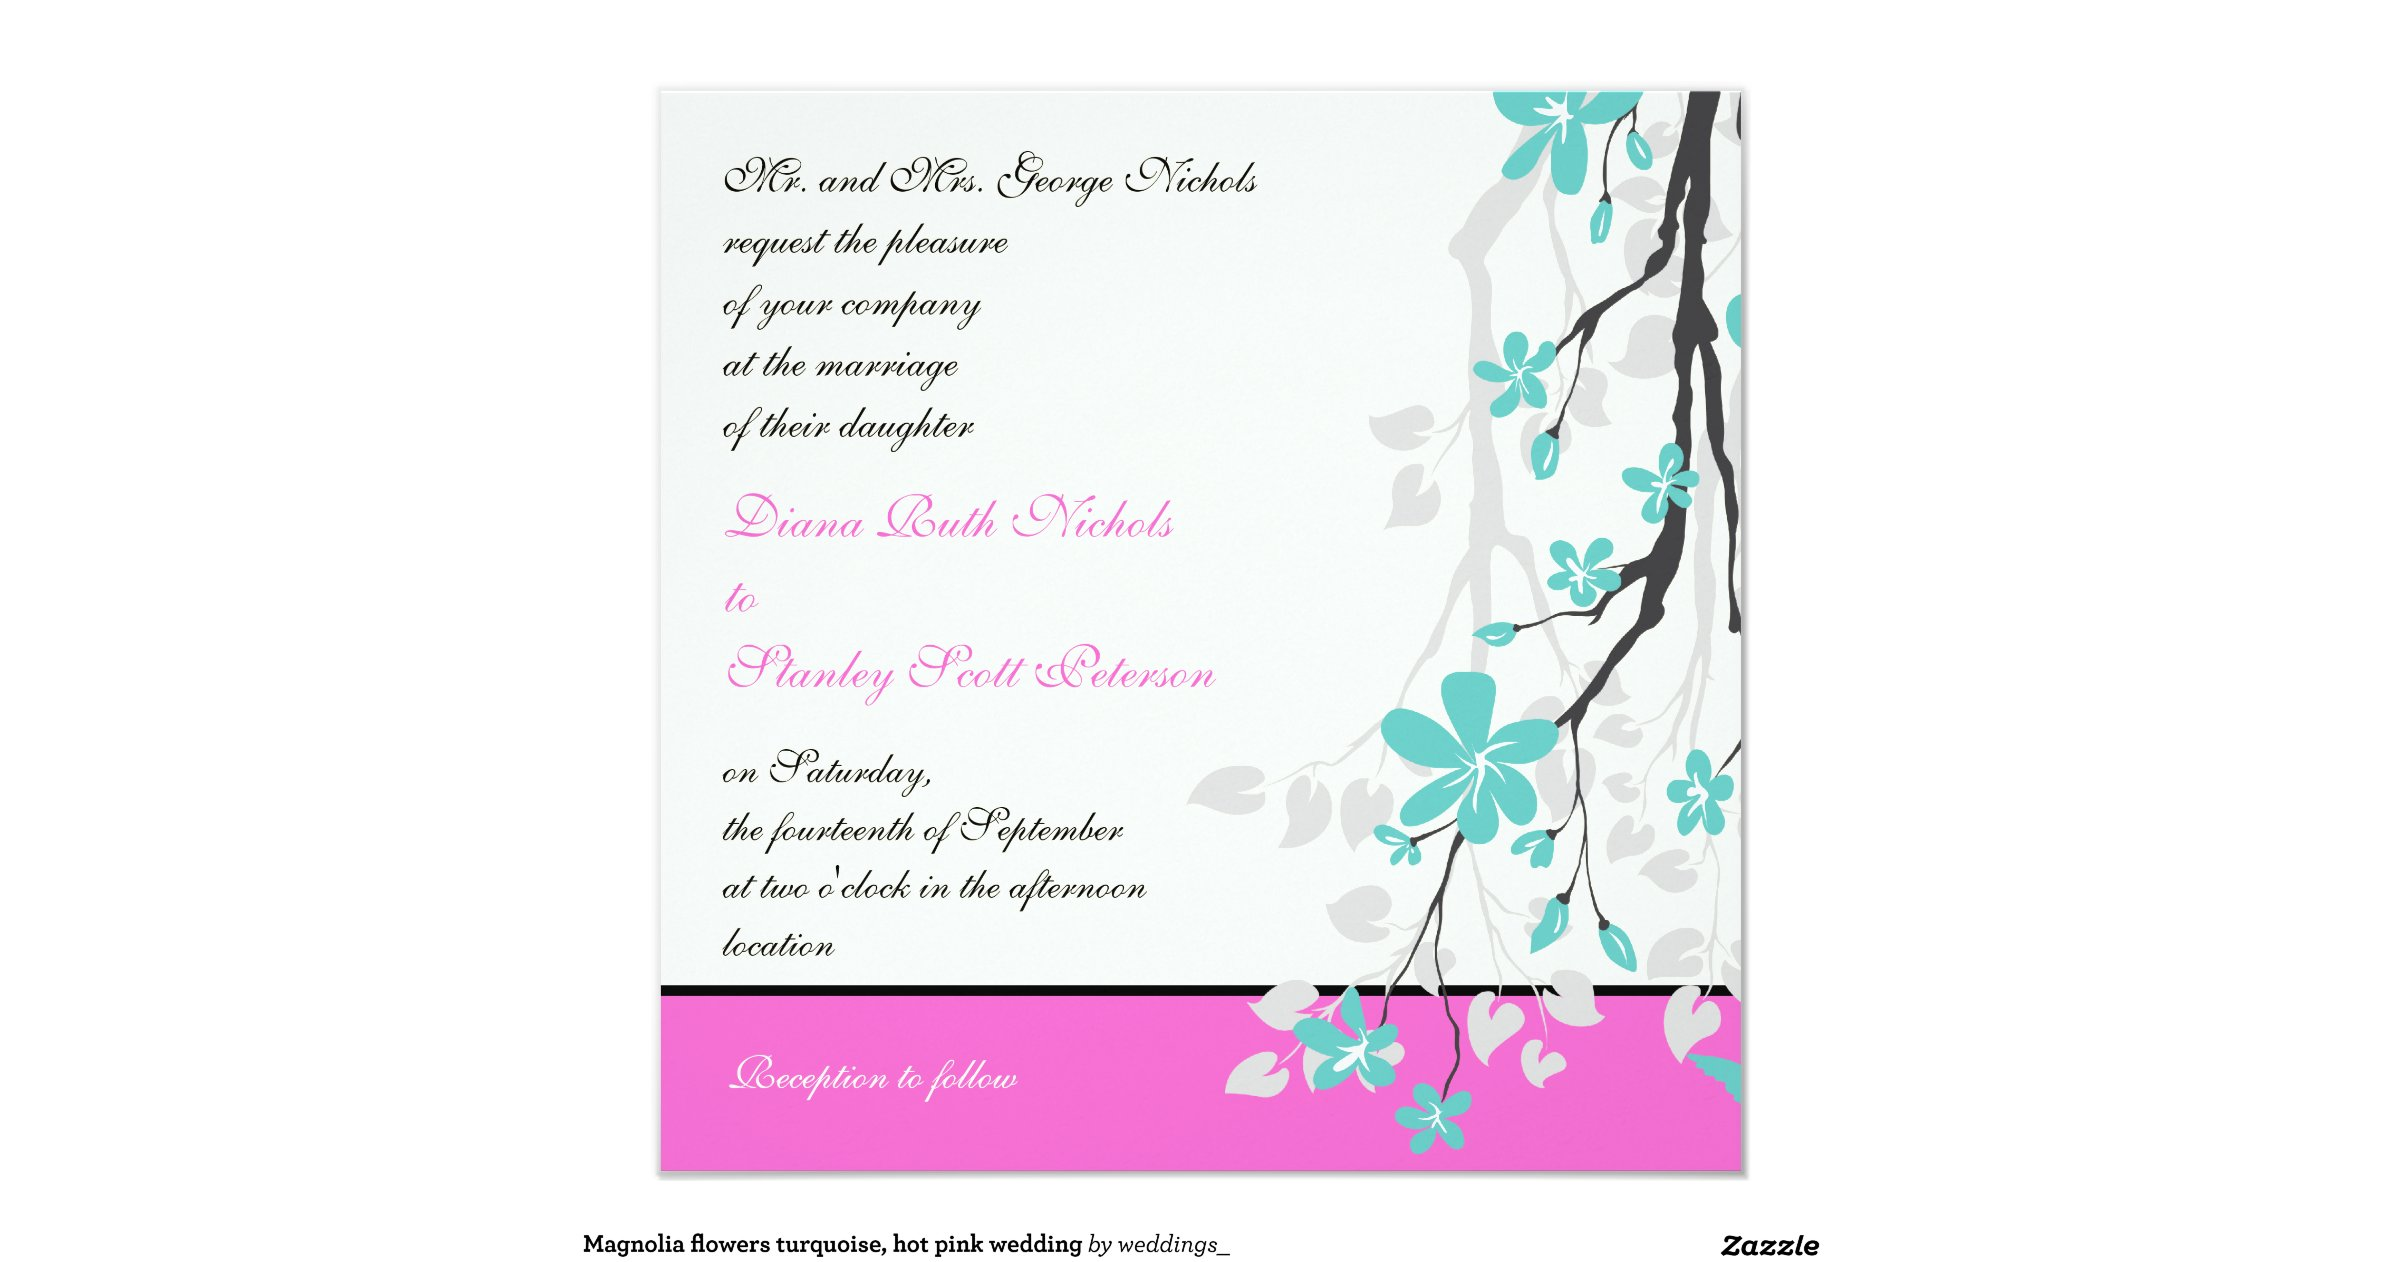 Turquoise And Pink Wedding Invitations: Magnolia_flowers_turquoise_hot_pink_wedding_invitation